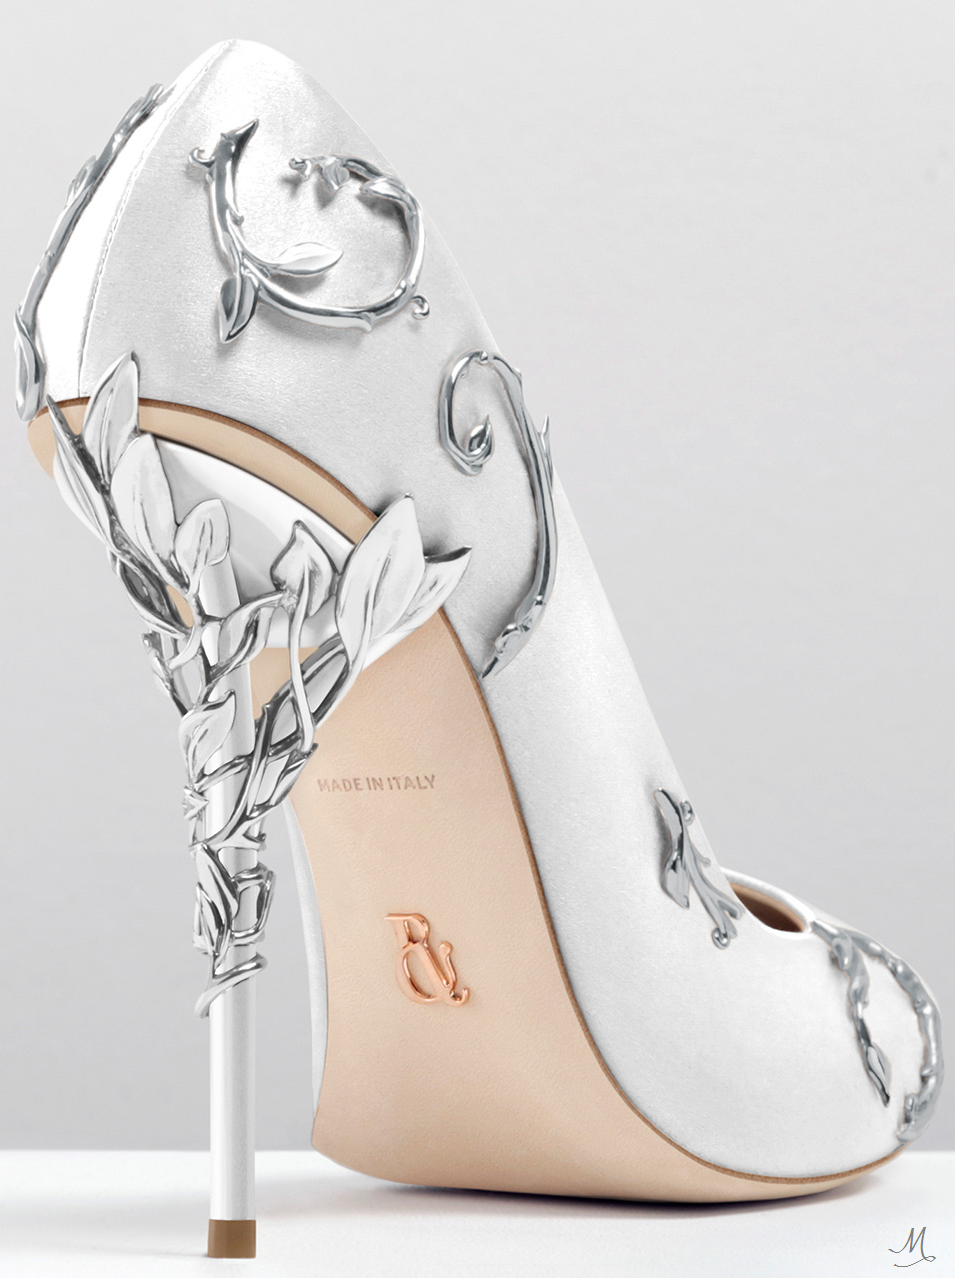 Bridal shoes models 2018 Source by hochzeitstil. RALPH   RUSSO EDEN PUMP  WHITE SATIN WITH SILVER LEAVES 469893ffa4cc